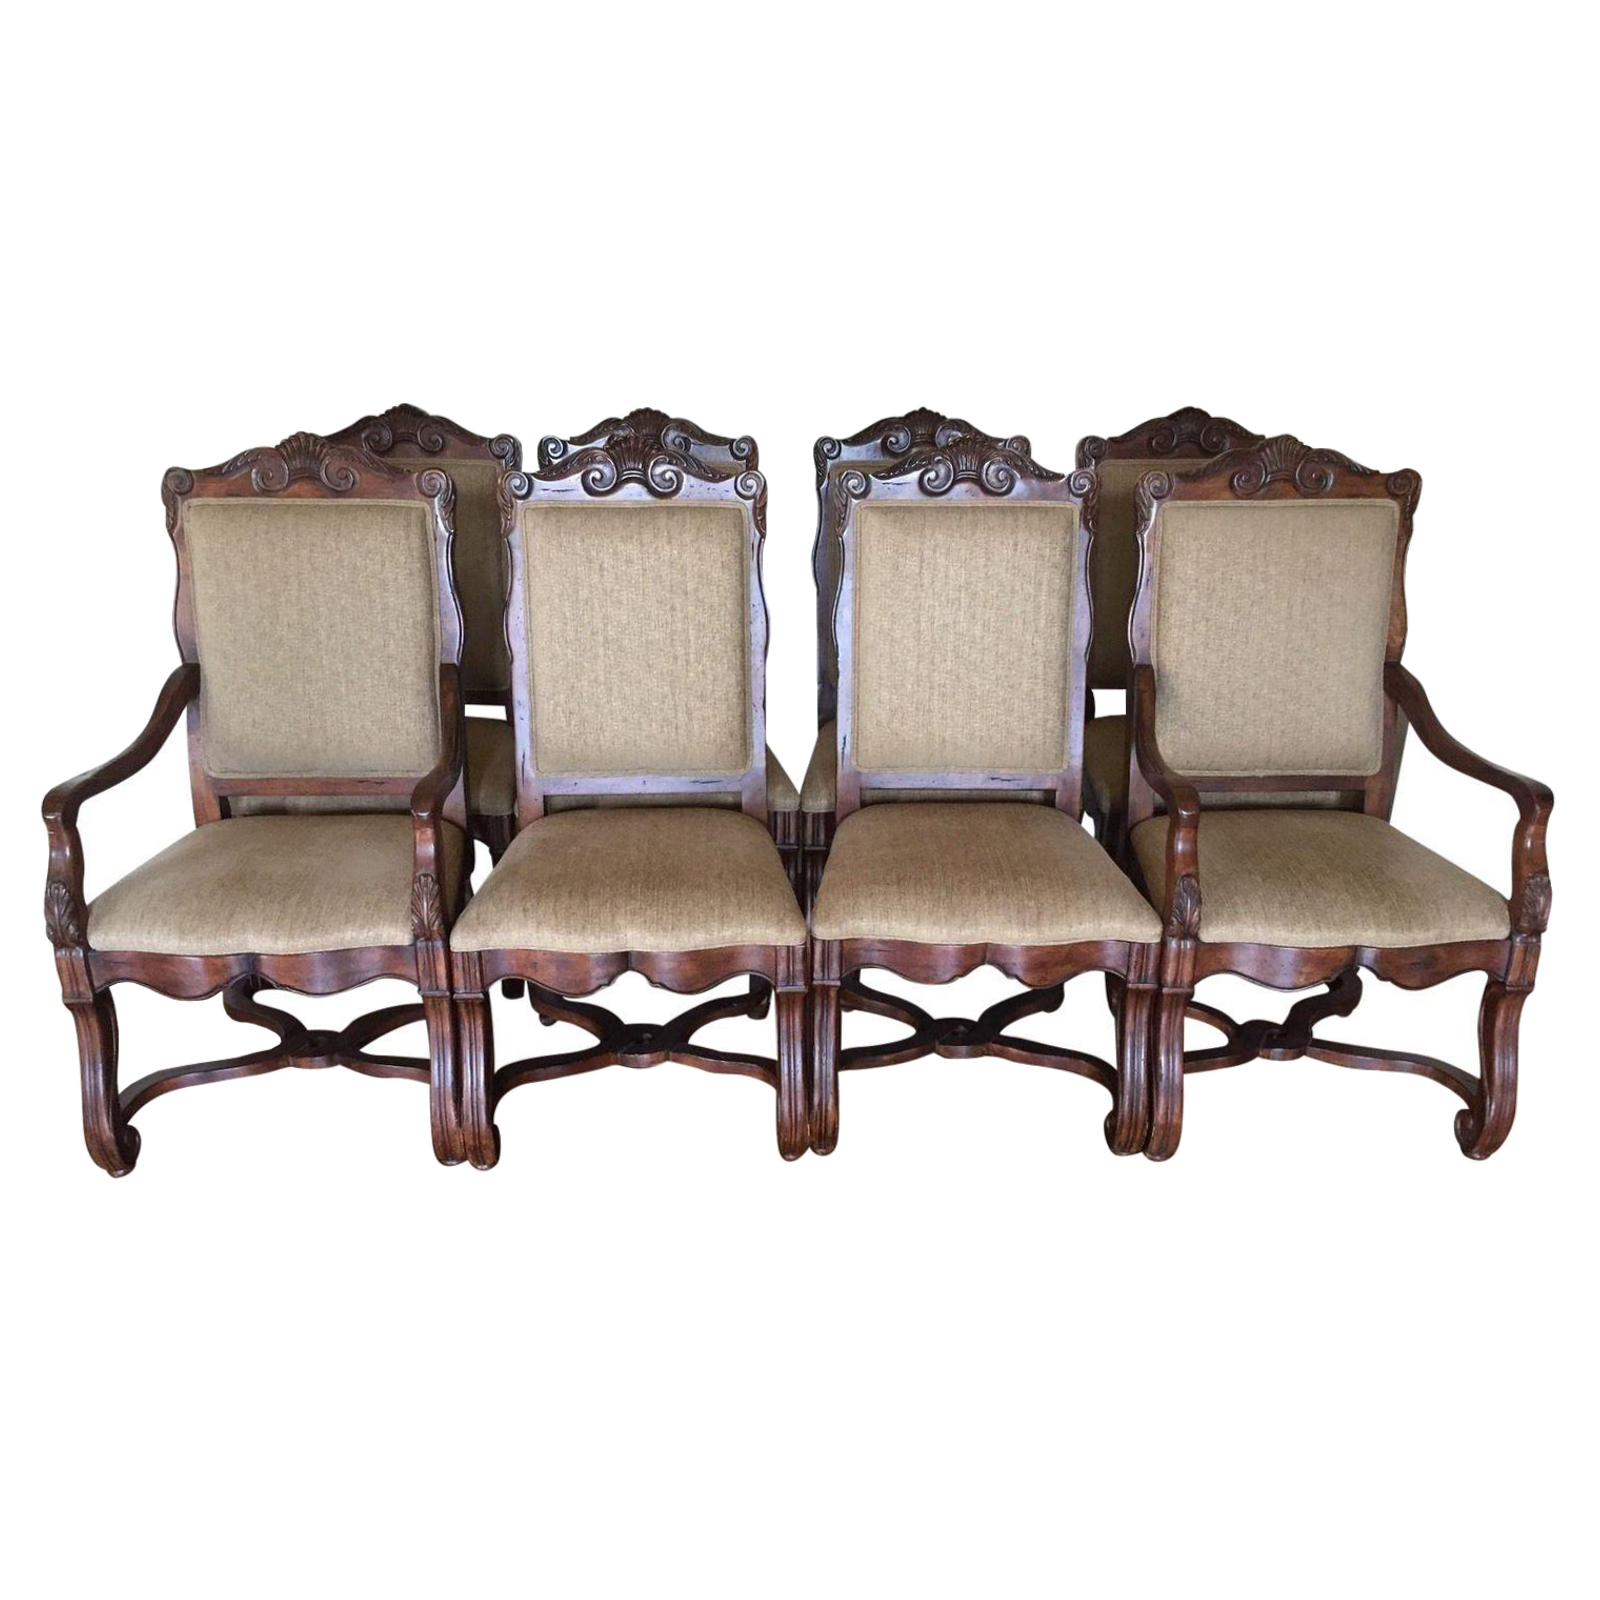 Hekman Loire Valley French Country Dining Chairs Set of 8